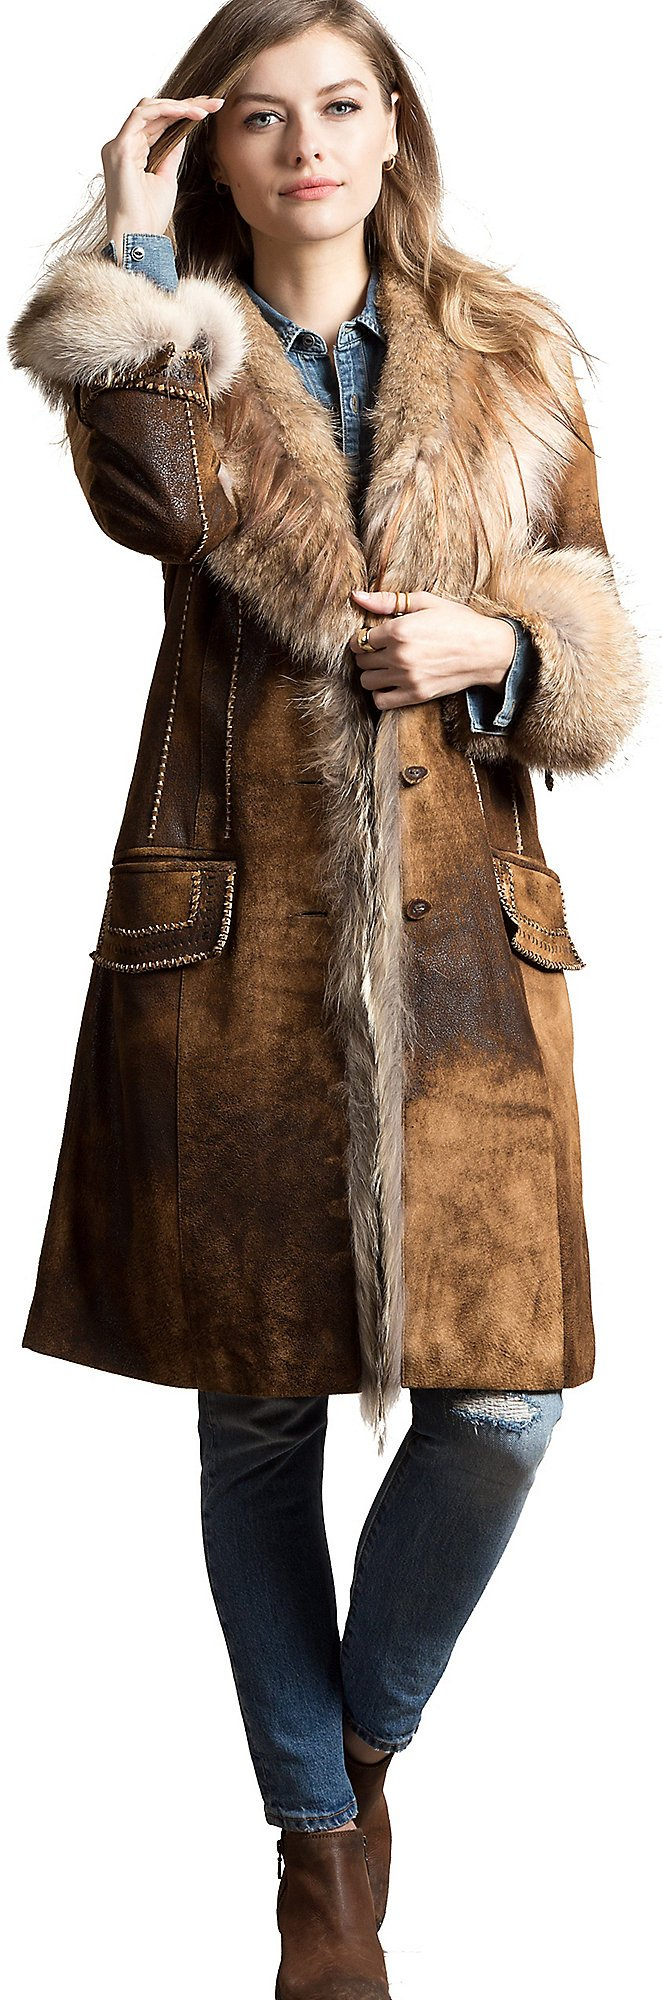 Georgia Distressed Lambskin Leather Coat with Coyote Fur Trim, BROWN, Size Large (10)